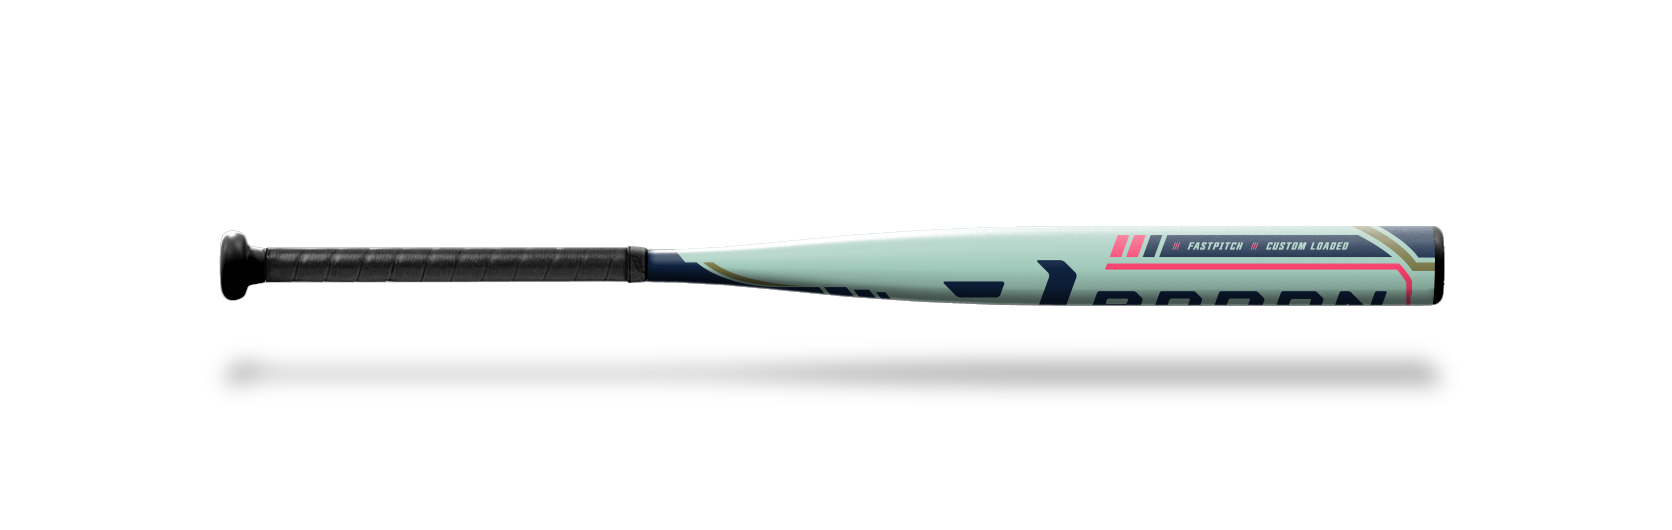 Fastpitch bat graphics softball